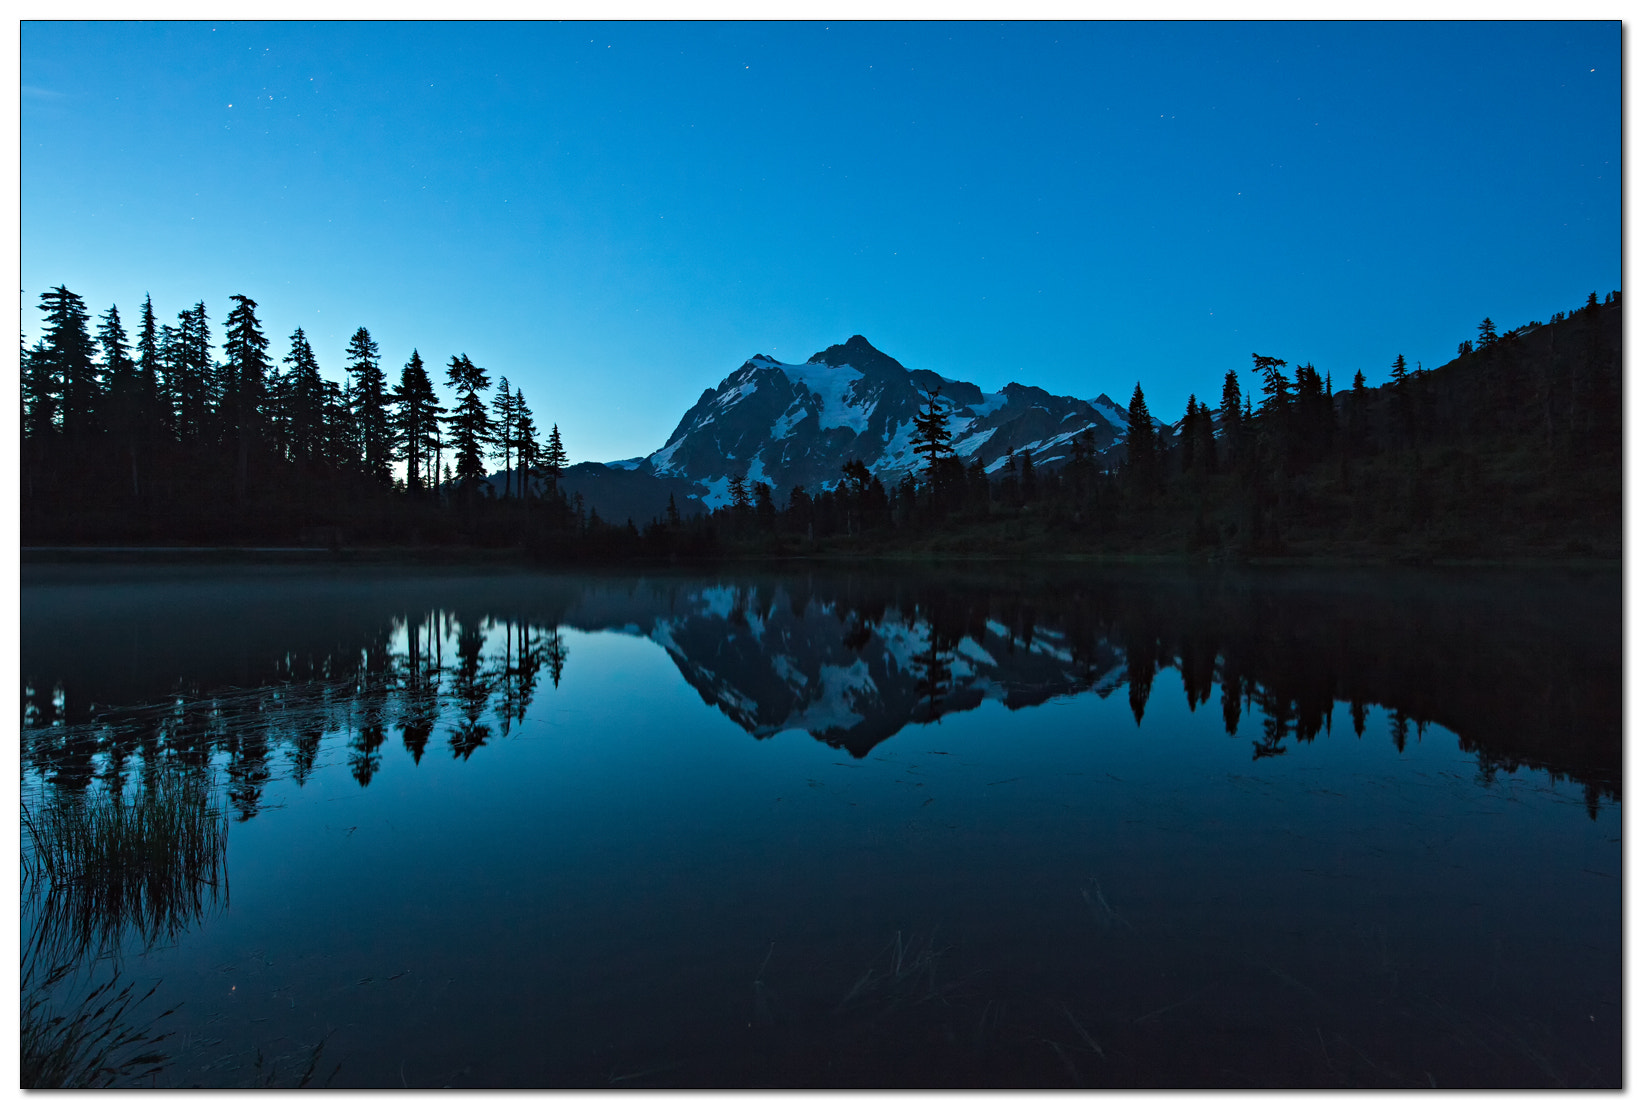 Photograph Shuksan Sunrise by Jameel Hyder on 500px